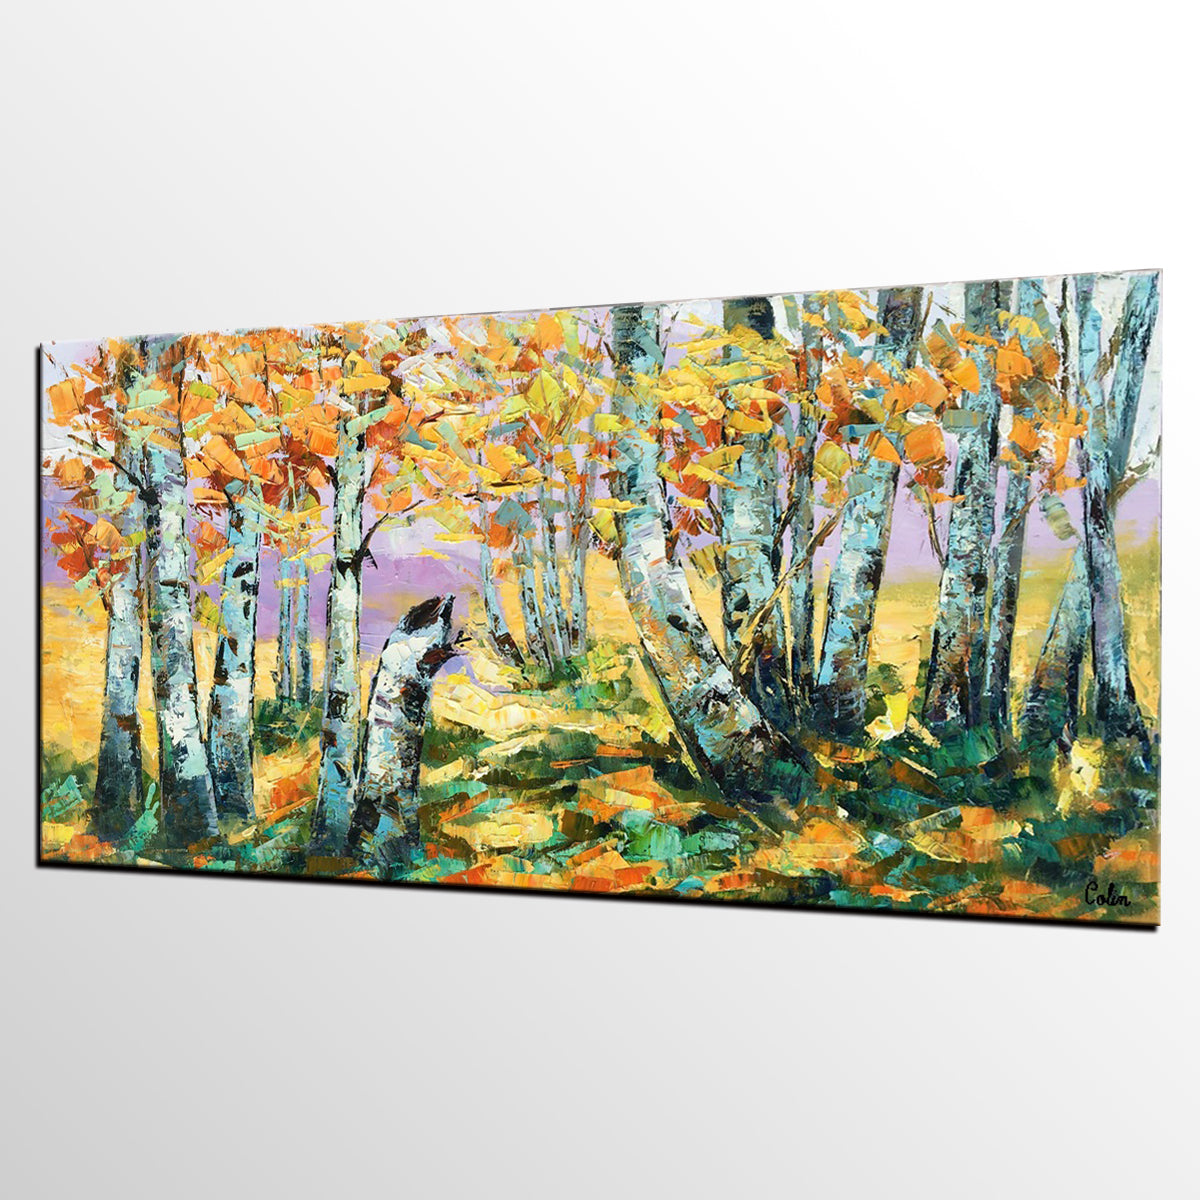 Autumn Tree Painting, Large Wall Art, Landscape Painting, Large Art, Canvas Art, Wall Art, Original Artwork, Canvas Painting, Oil Painting, Art on Canvas 194